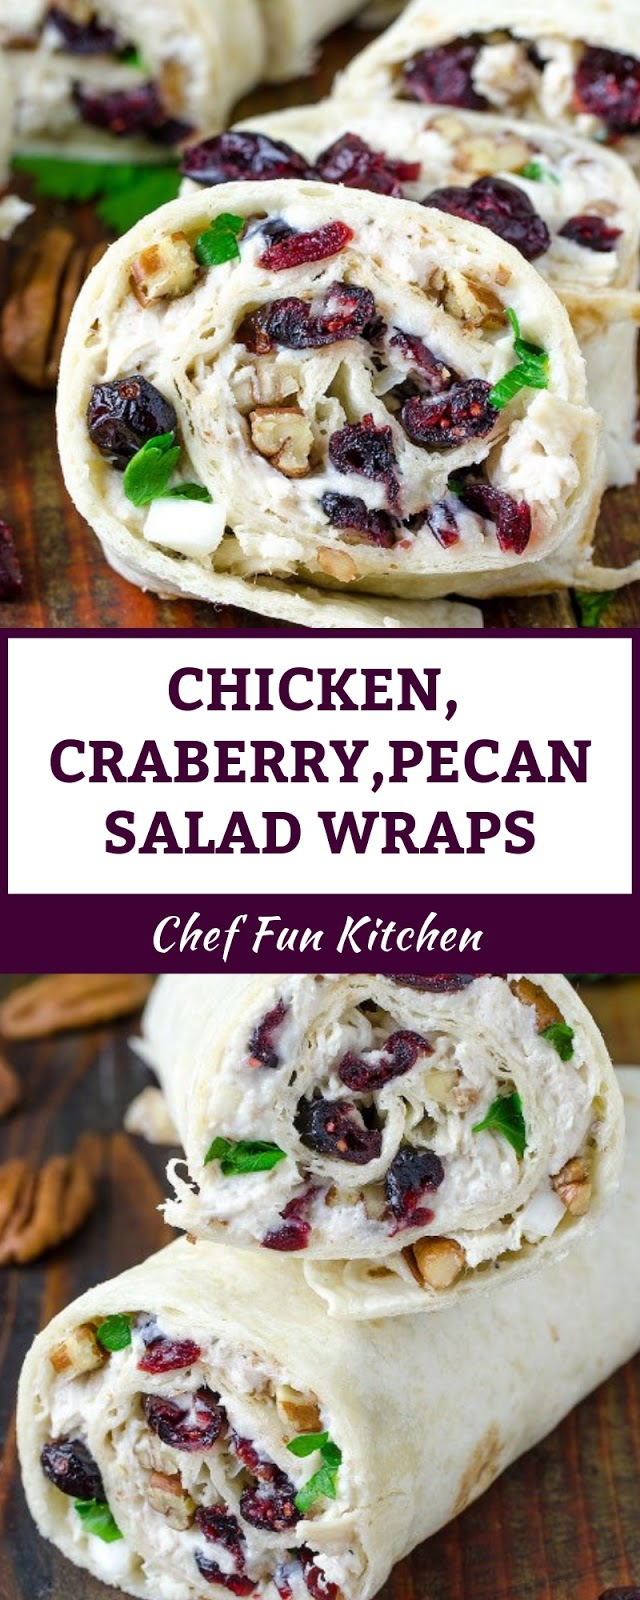 CHICKEN,CRANBERRY,PECAN SALAD WRAPS